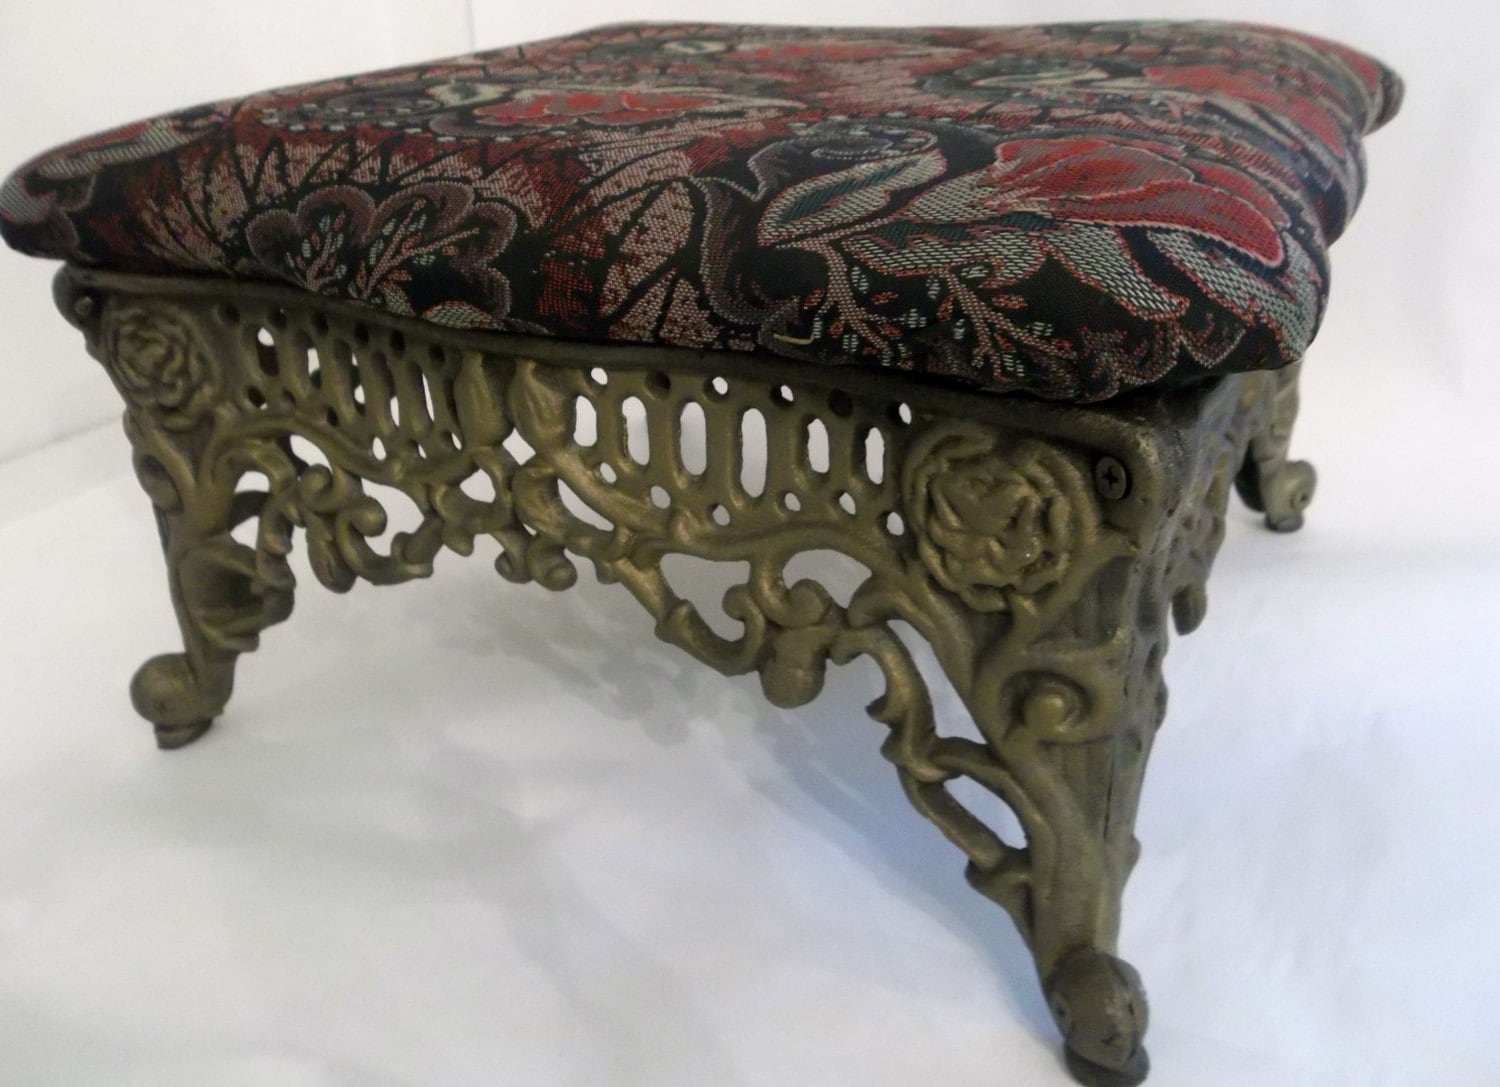 Foot Stool Cast Iron Foot Stool Ornate Heavy Metal Foot